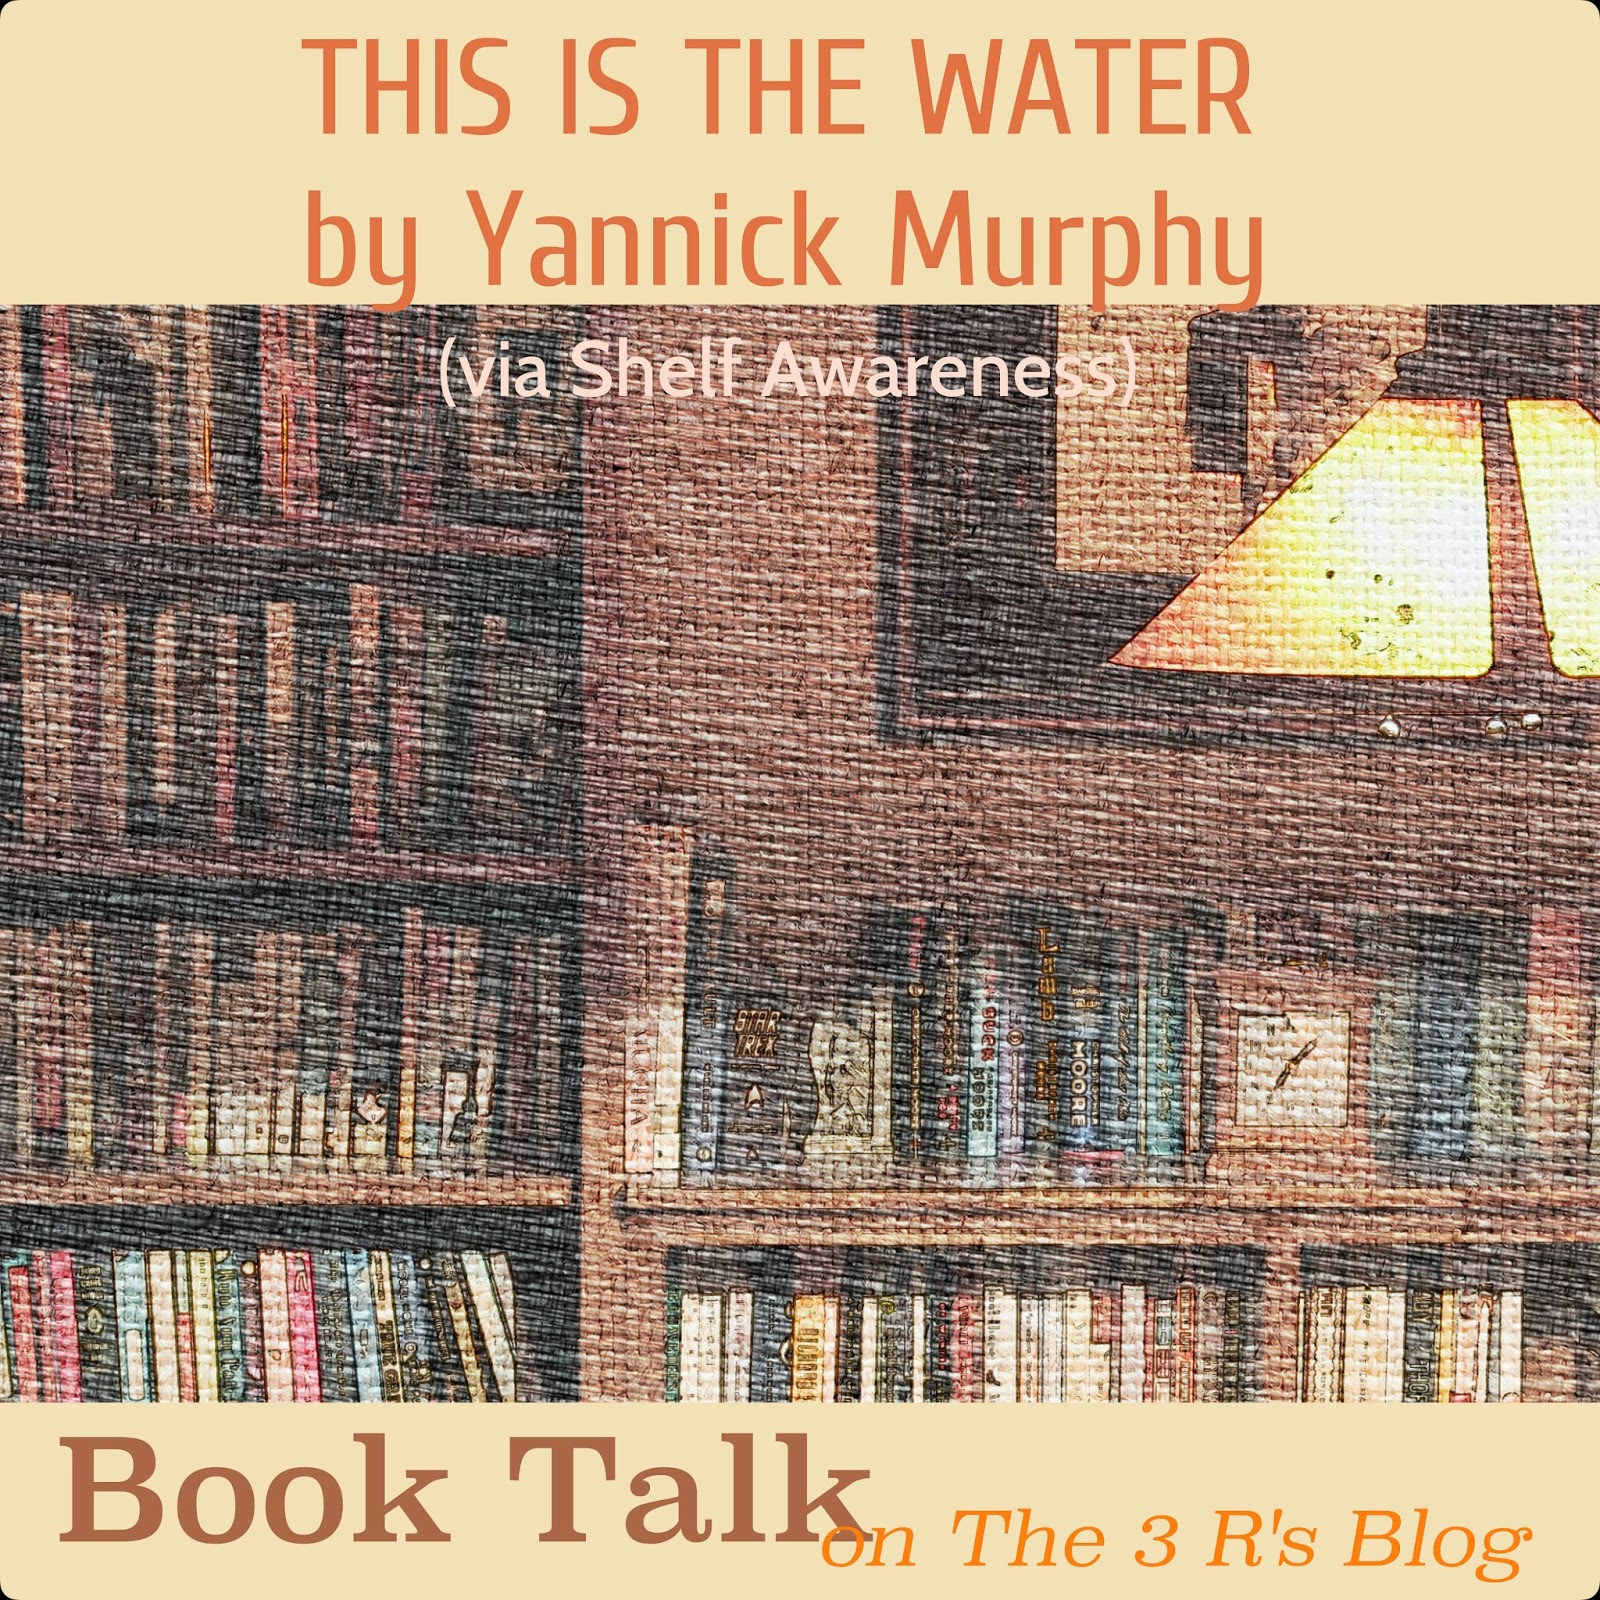 THIS IS THE WATER by Yannick Murphy discussed on The 3 Rs Blog